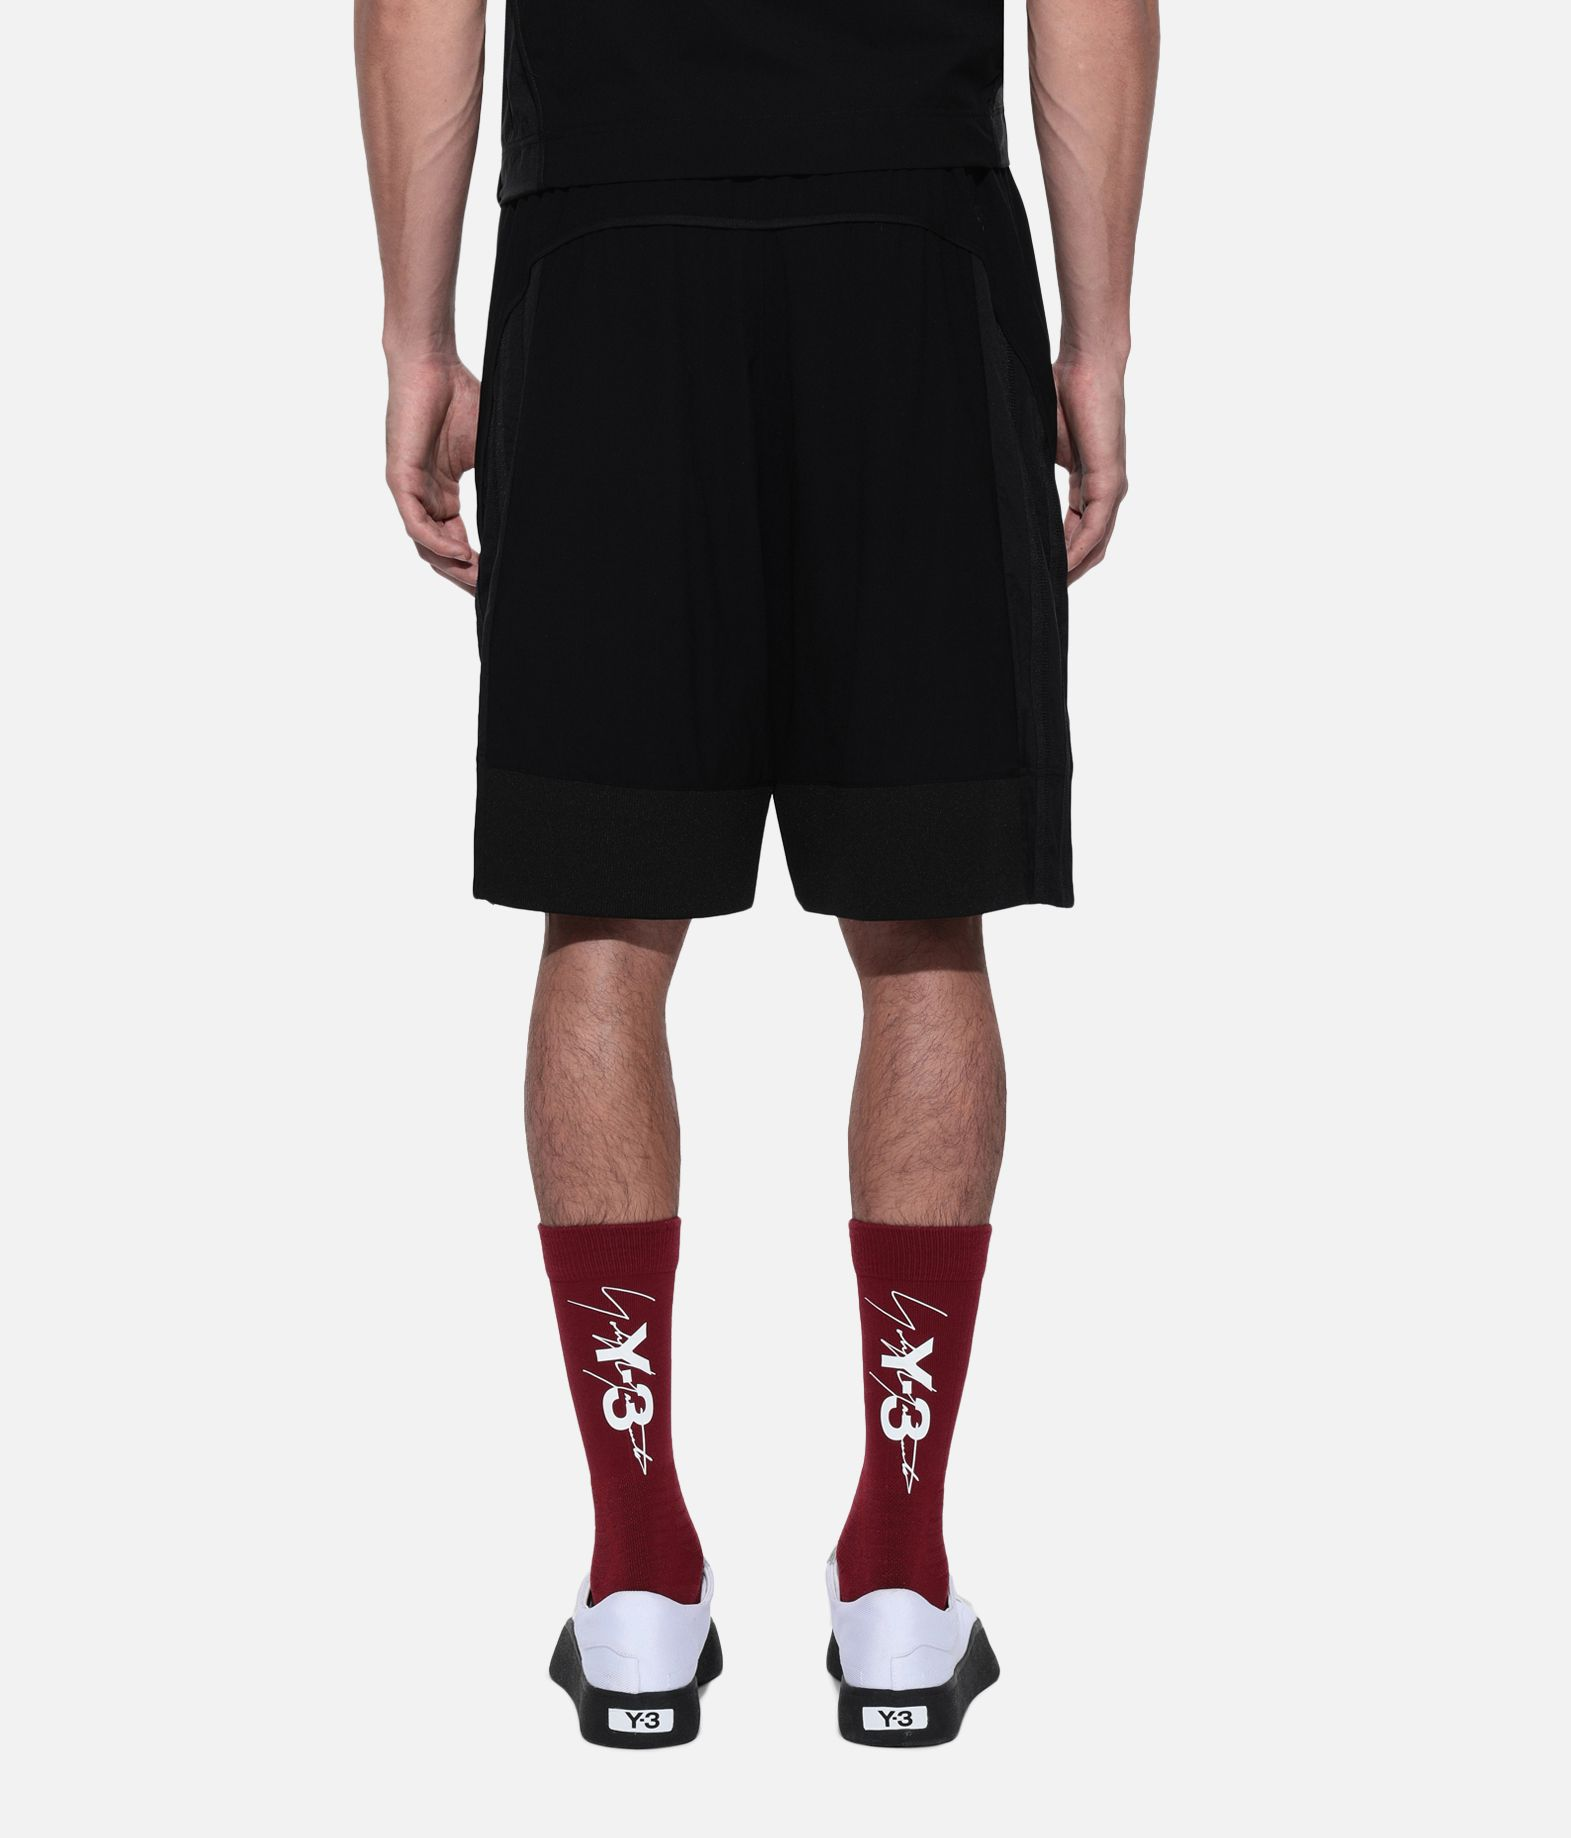 Y-3 Y-3 3-Stripes Material Mix Shorts Shorts Man d